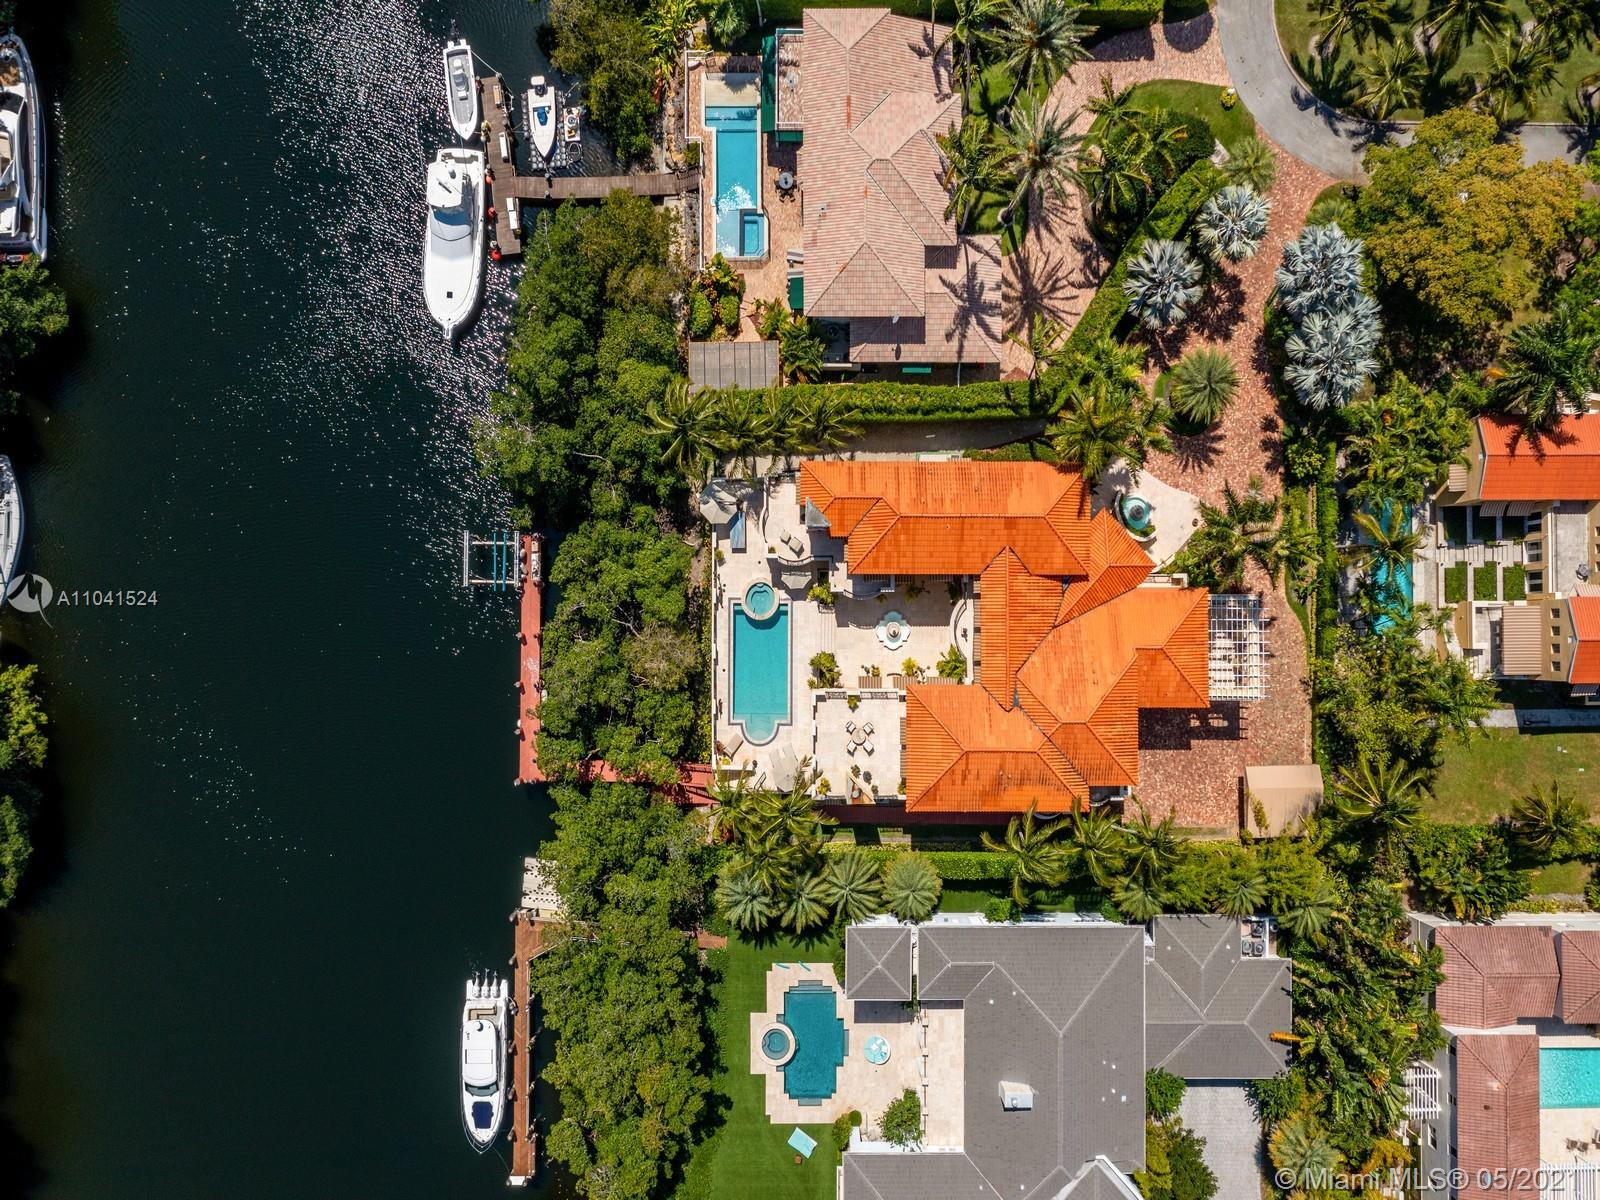 Enjoy exceptional WATERFRONT lifestyle,in this Classic Mediterranean 9,210 SF Actual Area COCOPLUM ESTATE. Ideally located on a private cul-de-sac in one of Coral Gables most coveted gated communities,this 7 bed,8.5 bath home is a boaters dream feat. 120 Ft of water-frontage w/NO BRIDGES TO BAY in an oversized 22,725 SF Lot.Built for entertaining this home feat.formal dinning&living,large kitchen,expansive family room w/full bar&movie room+center courtyard leading up to the pool&summer kitchen.Featuring the ideal floorplan w/large master suite+3 additional beds all w/ensuite baths&walk in closets upstairs,on the 1st floor you can find 2 home offices w/full baths+ a staff room.3 car garage,elevator,dock w/boat lift.Cocoplum offers 24/7 security,clubhouse,tennis courts,marina.